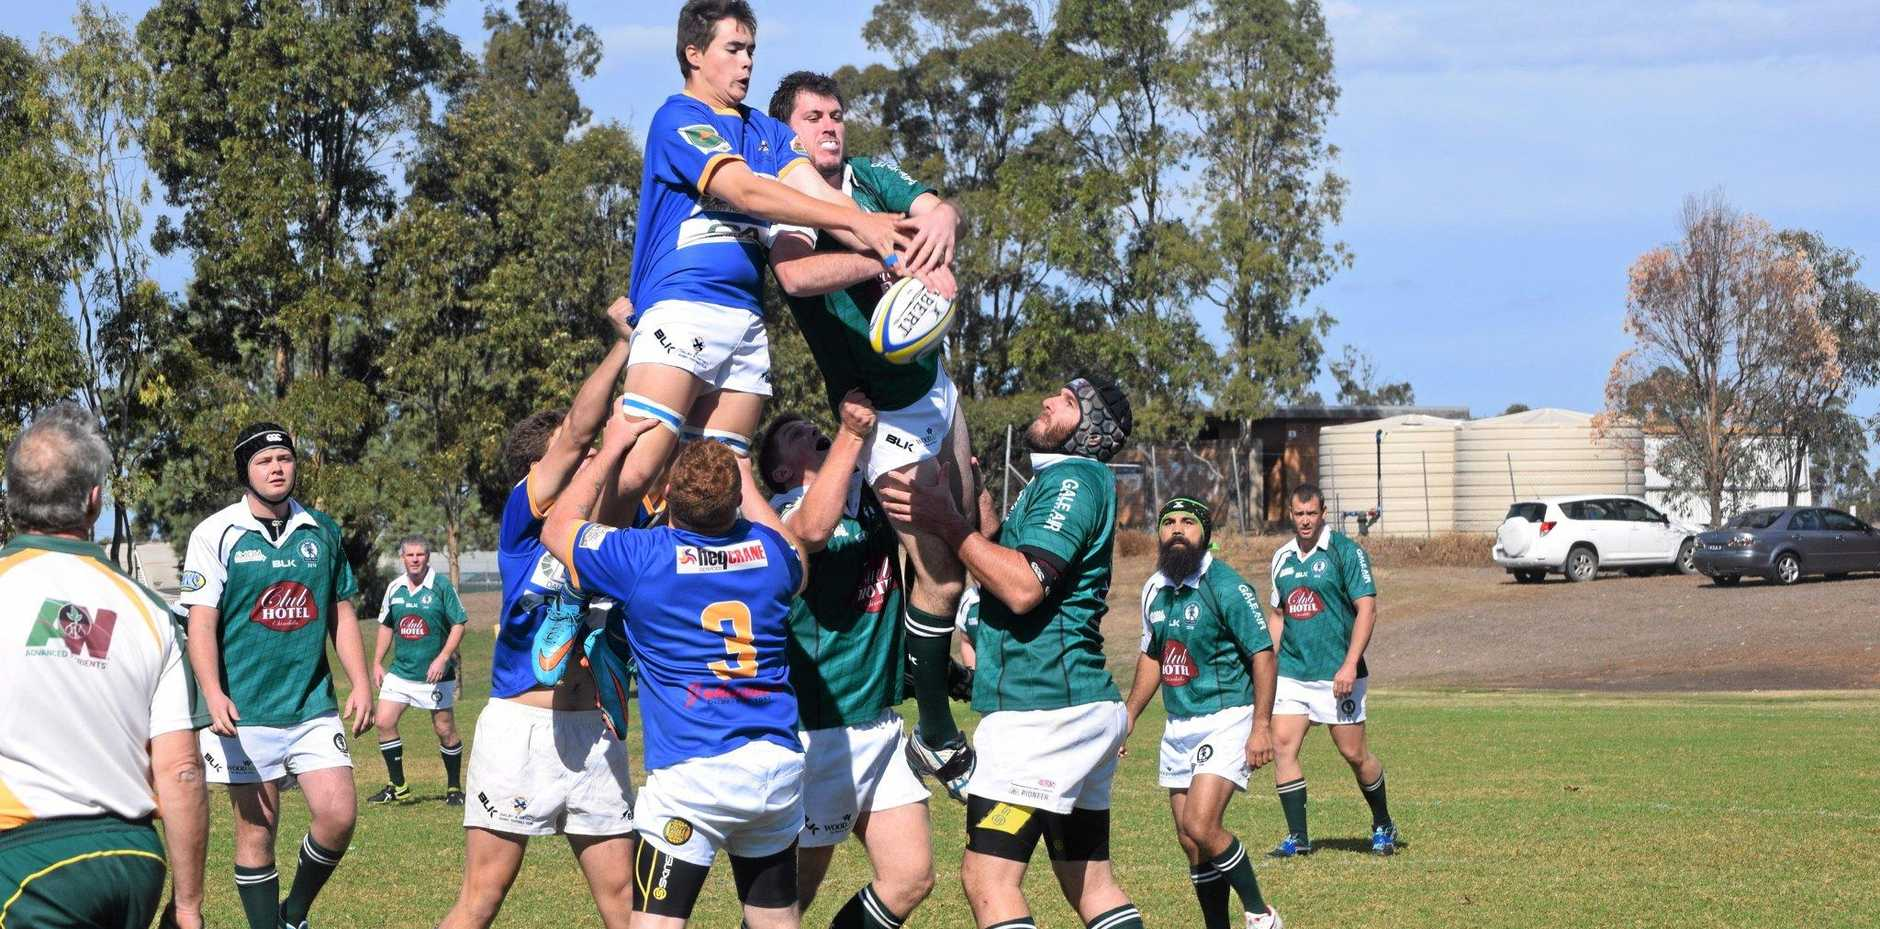 HOME AND HOSED: The Dalby Wheatmen gave the Chinchilla River Rats a lesson over the weekend.